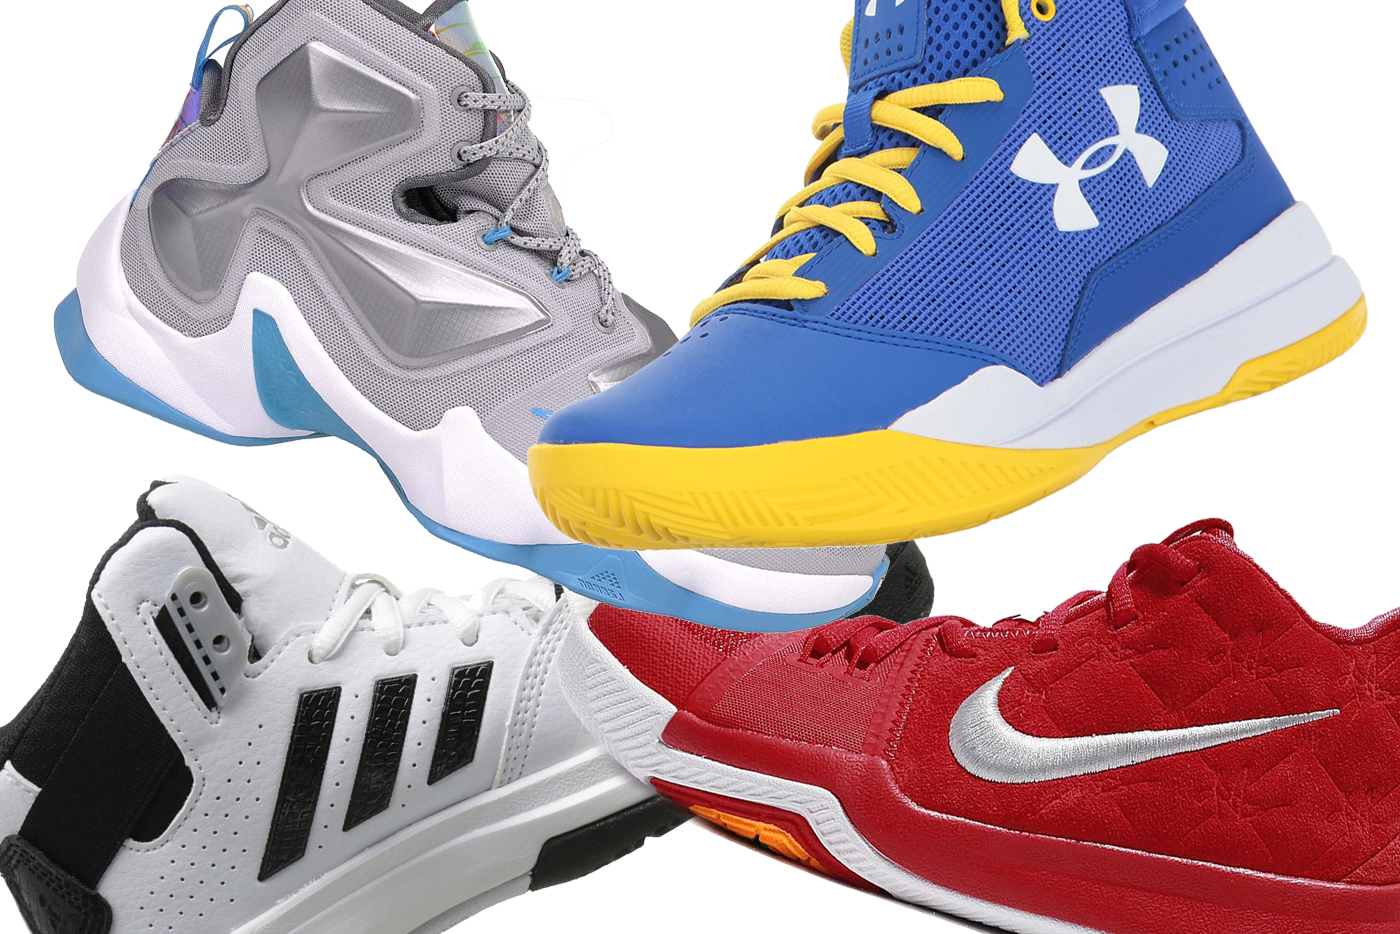 Best Basketball Shoes For Less